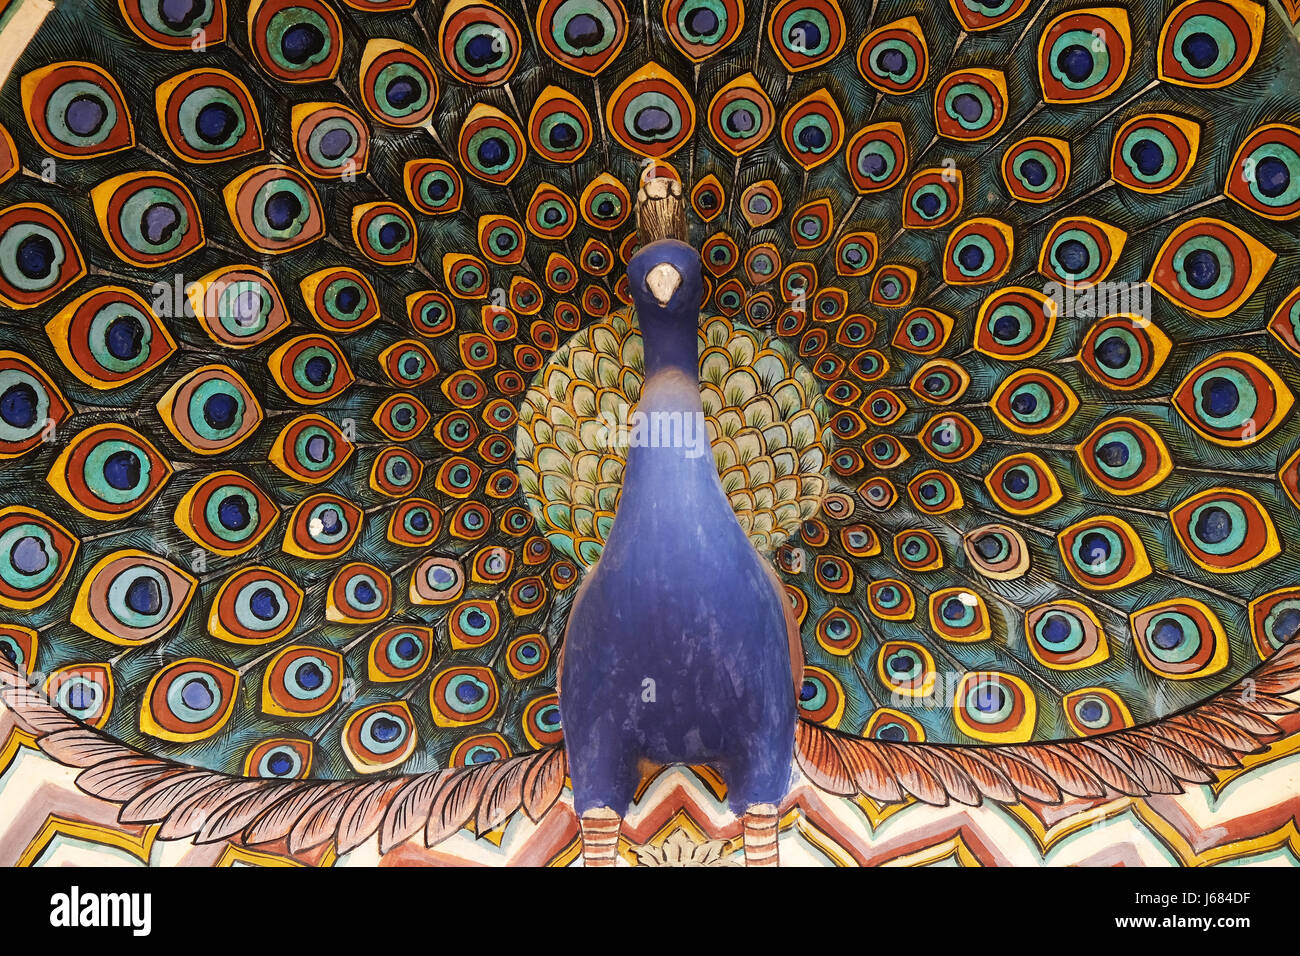 Peacock Gate at the Chandra Mahal, Jaipur City Palace in Jaipur, Rajasthan, India, on February, 16, 2016. - Stock Image